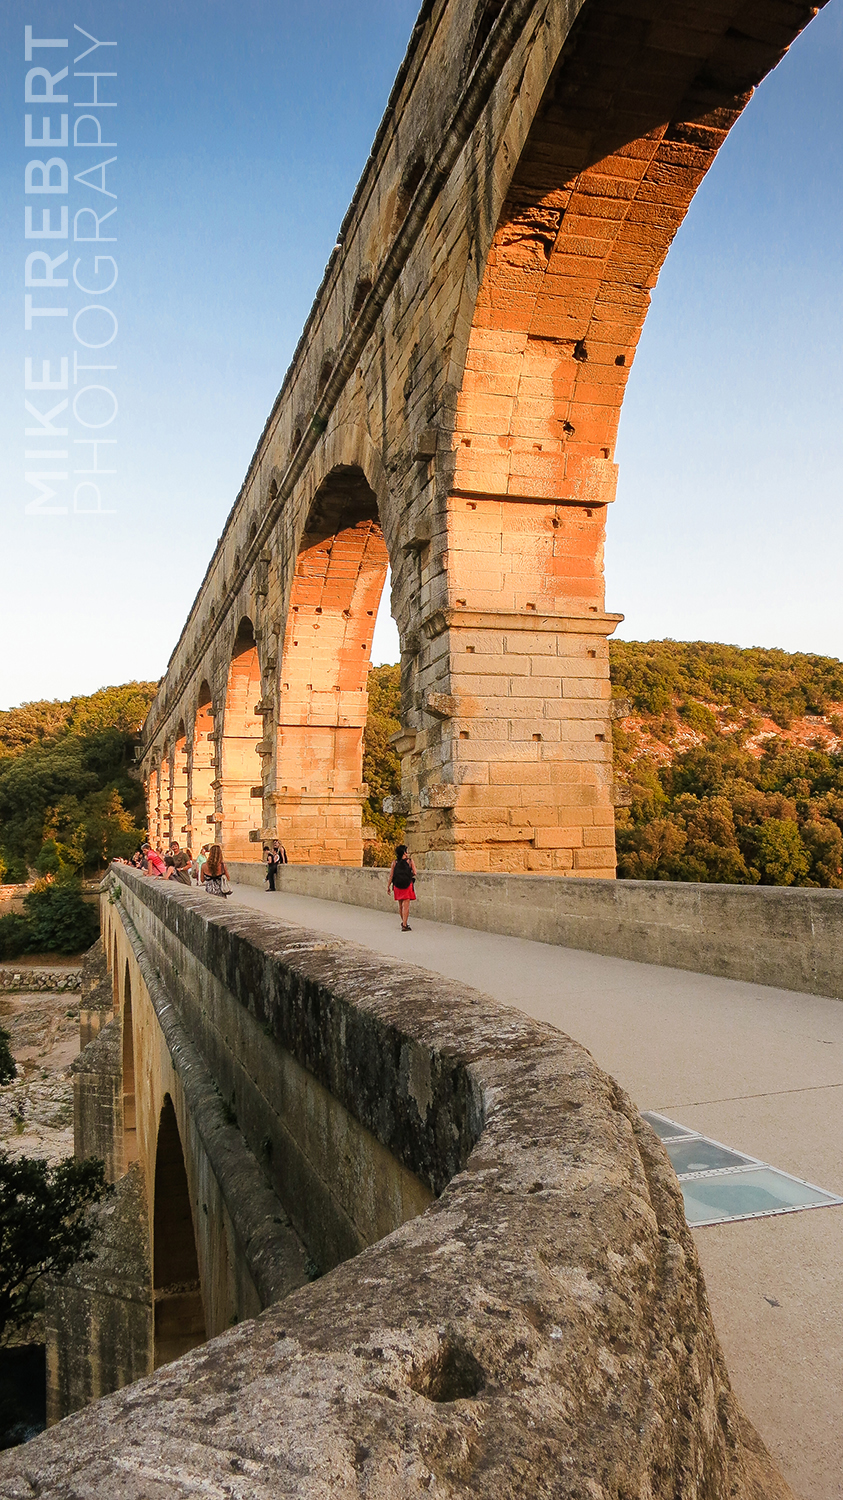 Sunset at Pont Du Gard, southern France.